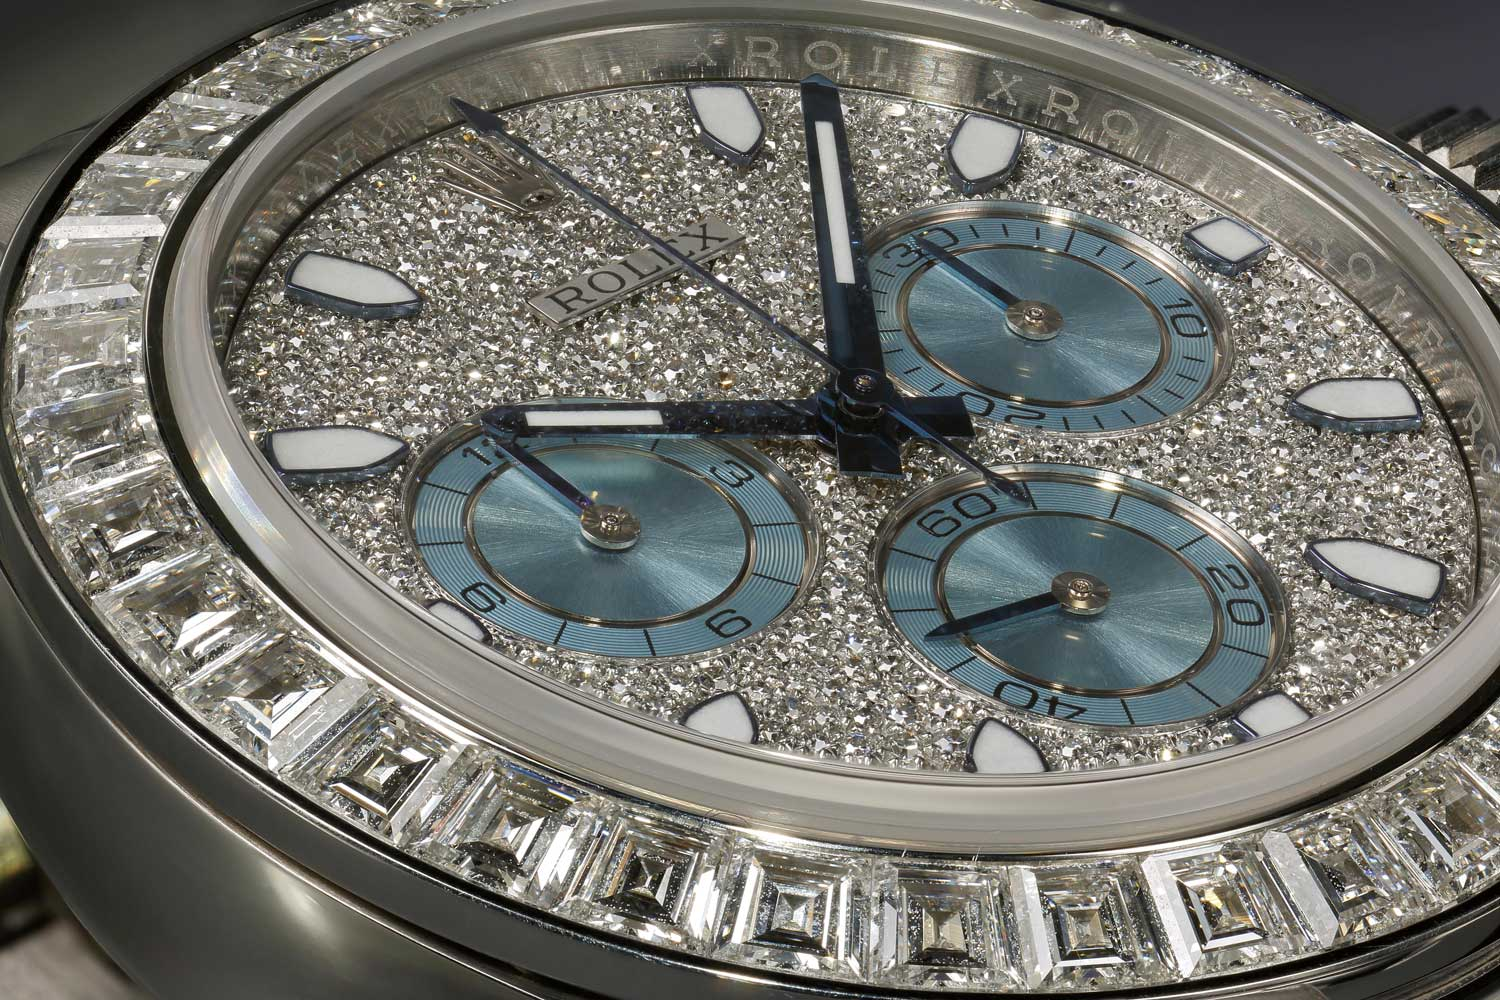 Ref. 116576 BRIL with baguette diamonds and a paved dial